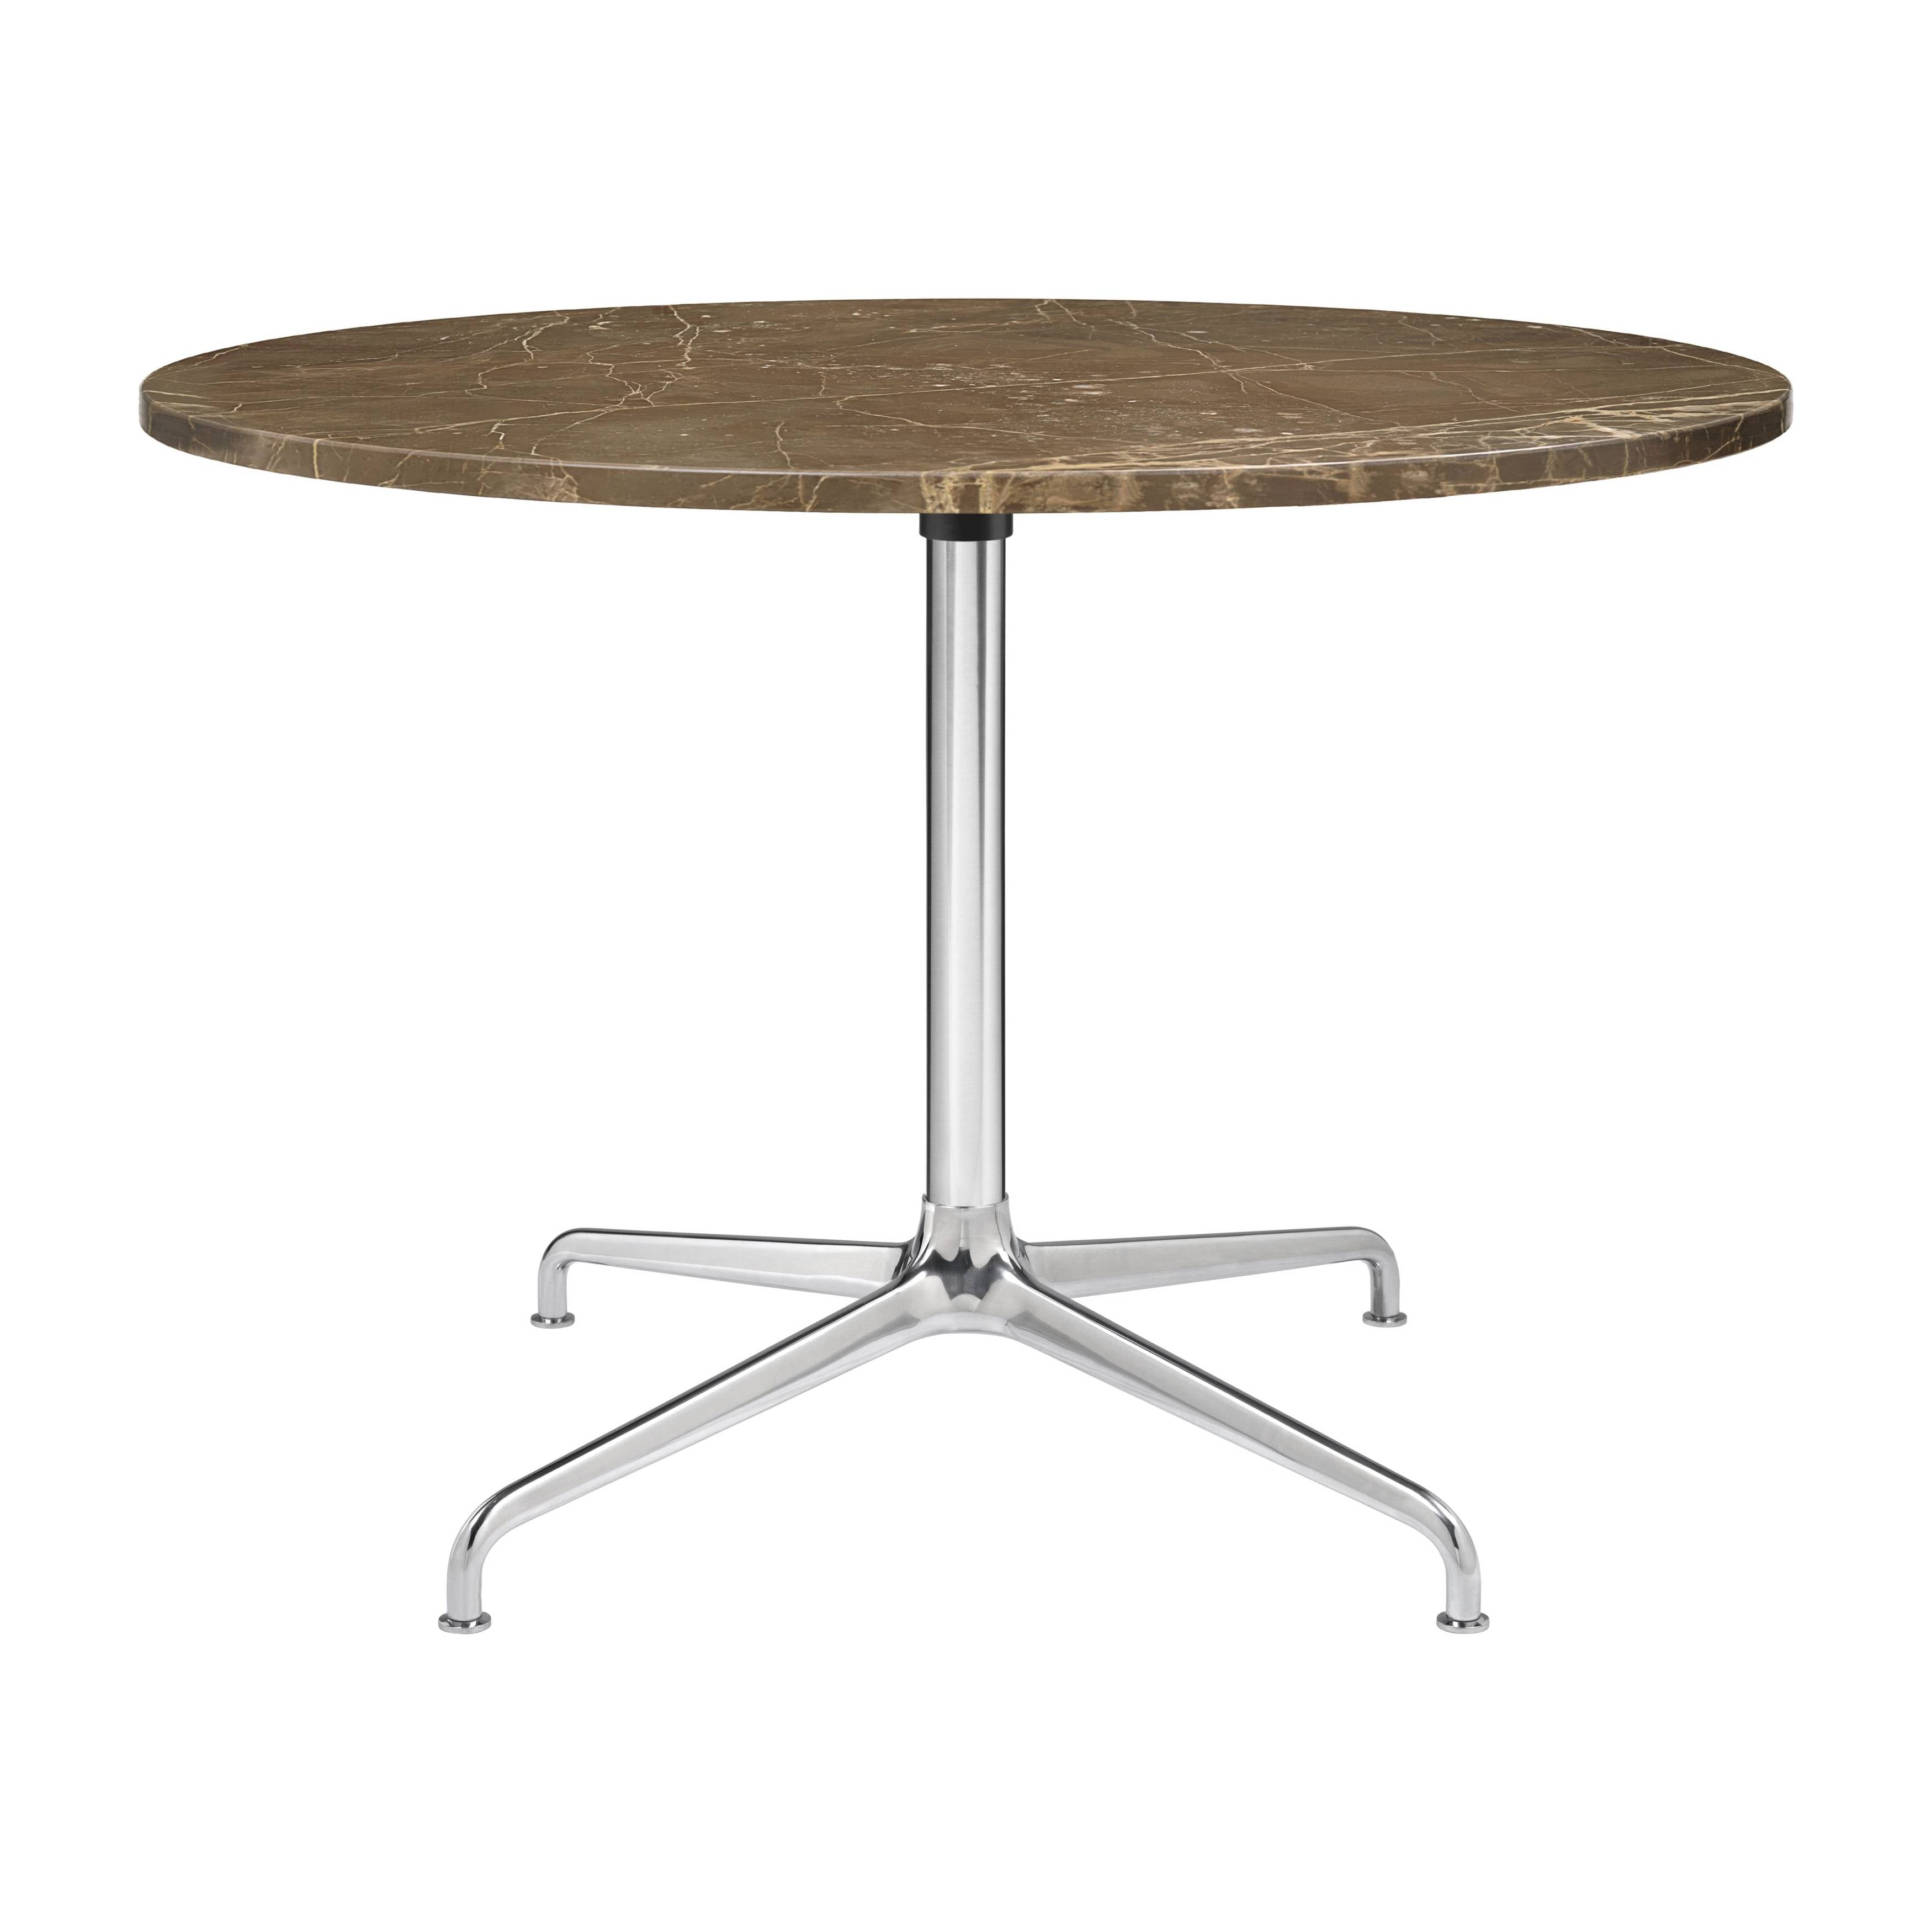 Beetle Lounge Table: Round + Large + Brown Emperador Marble + Polished Aluminum Base